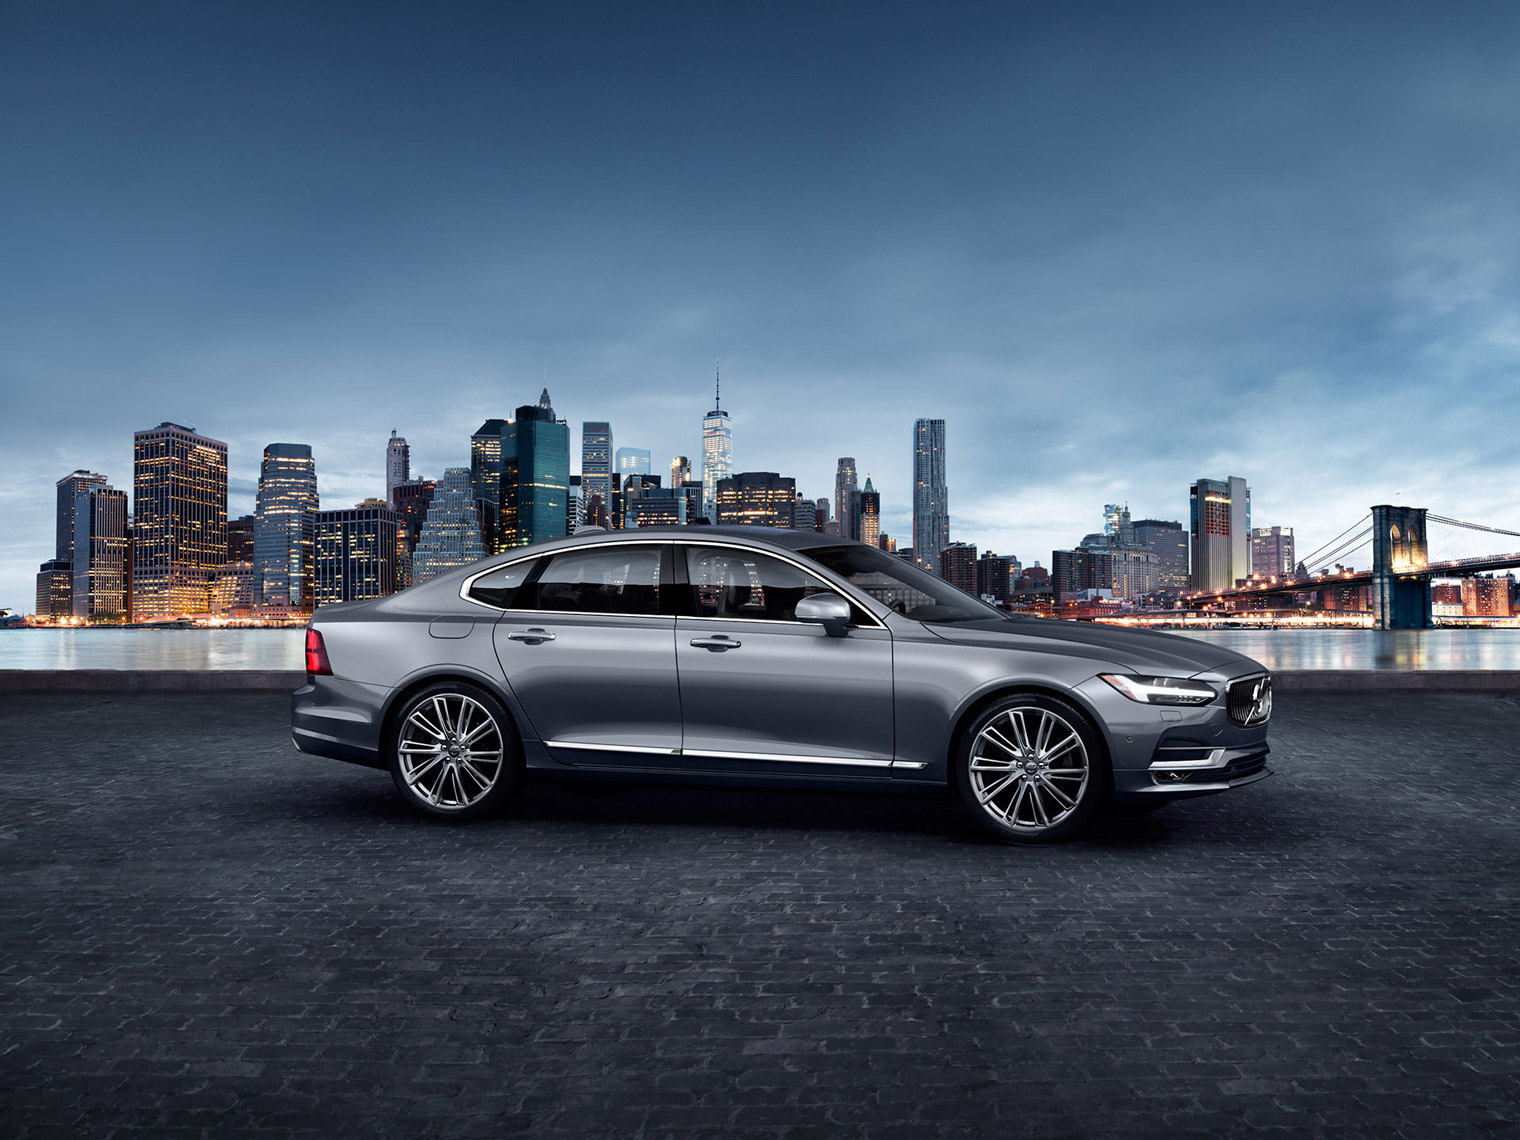 hellotpd_Nick_Simonite_Volvo_NYC_S90_1